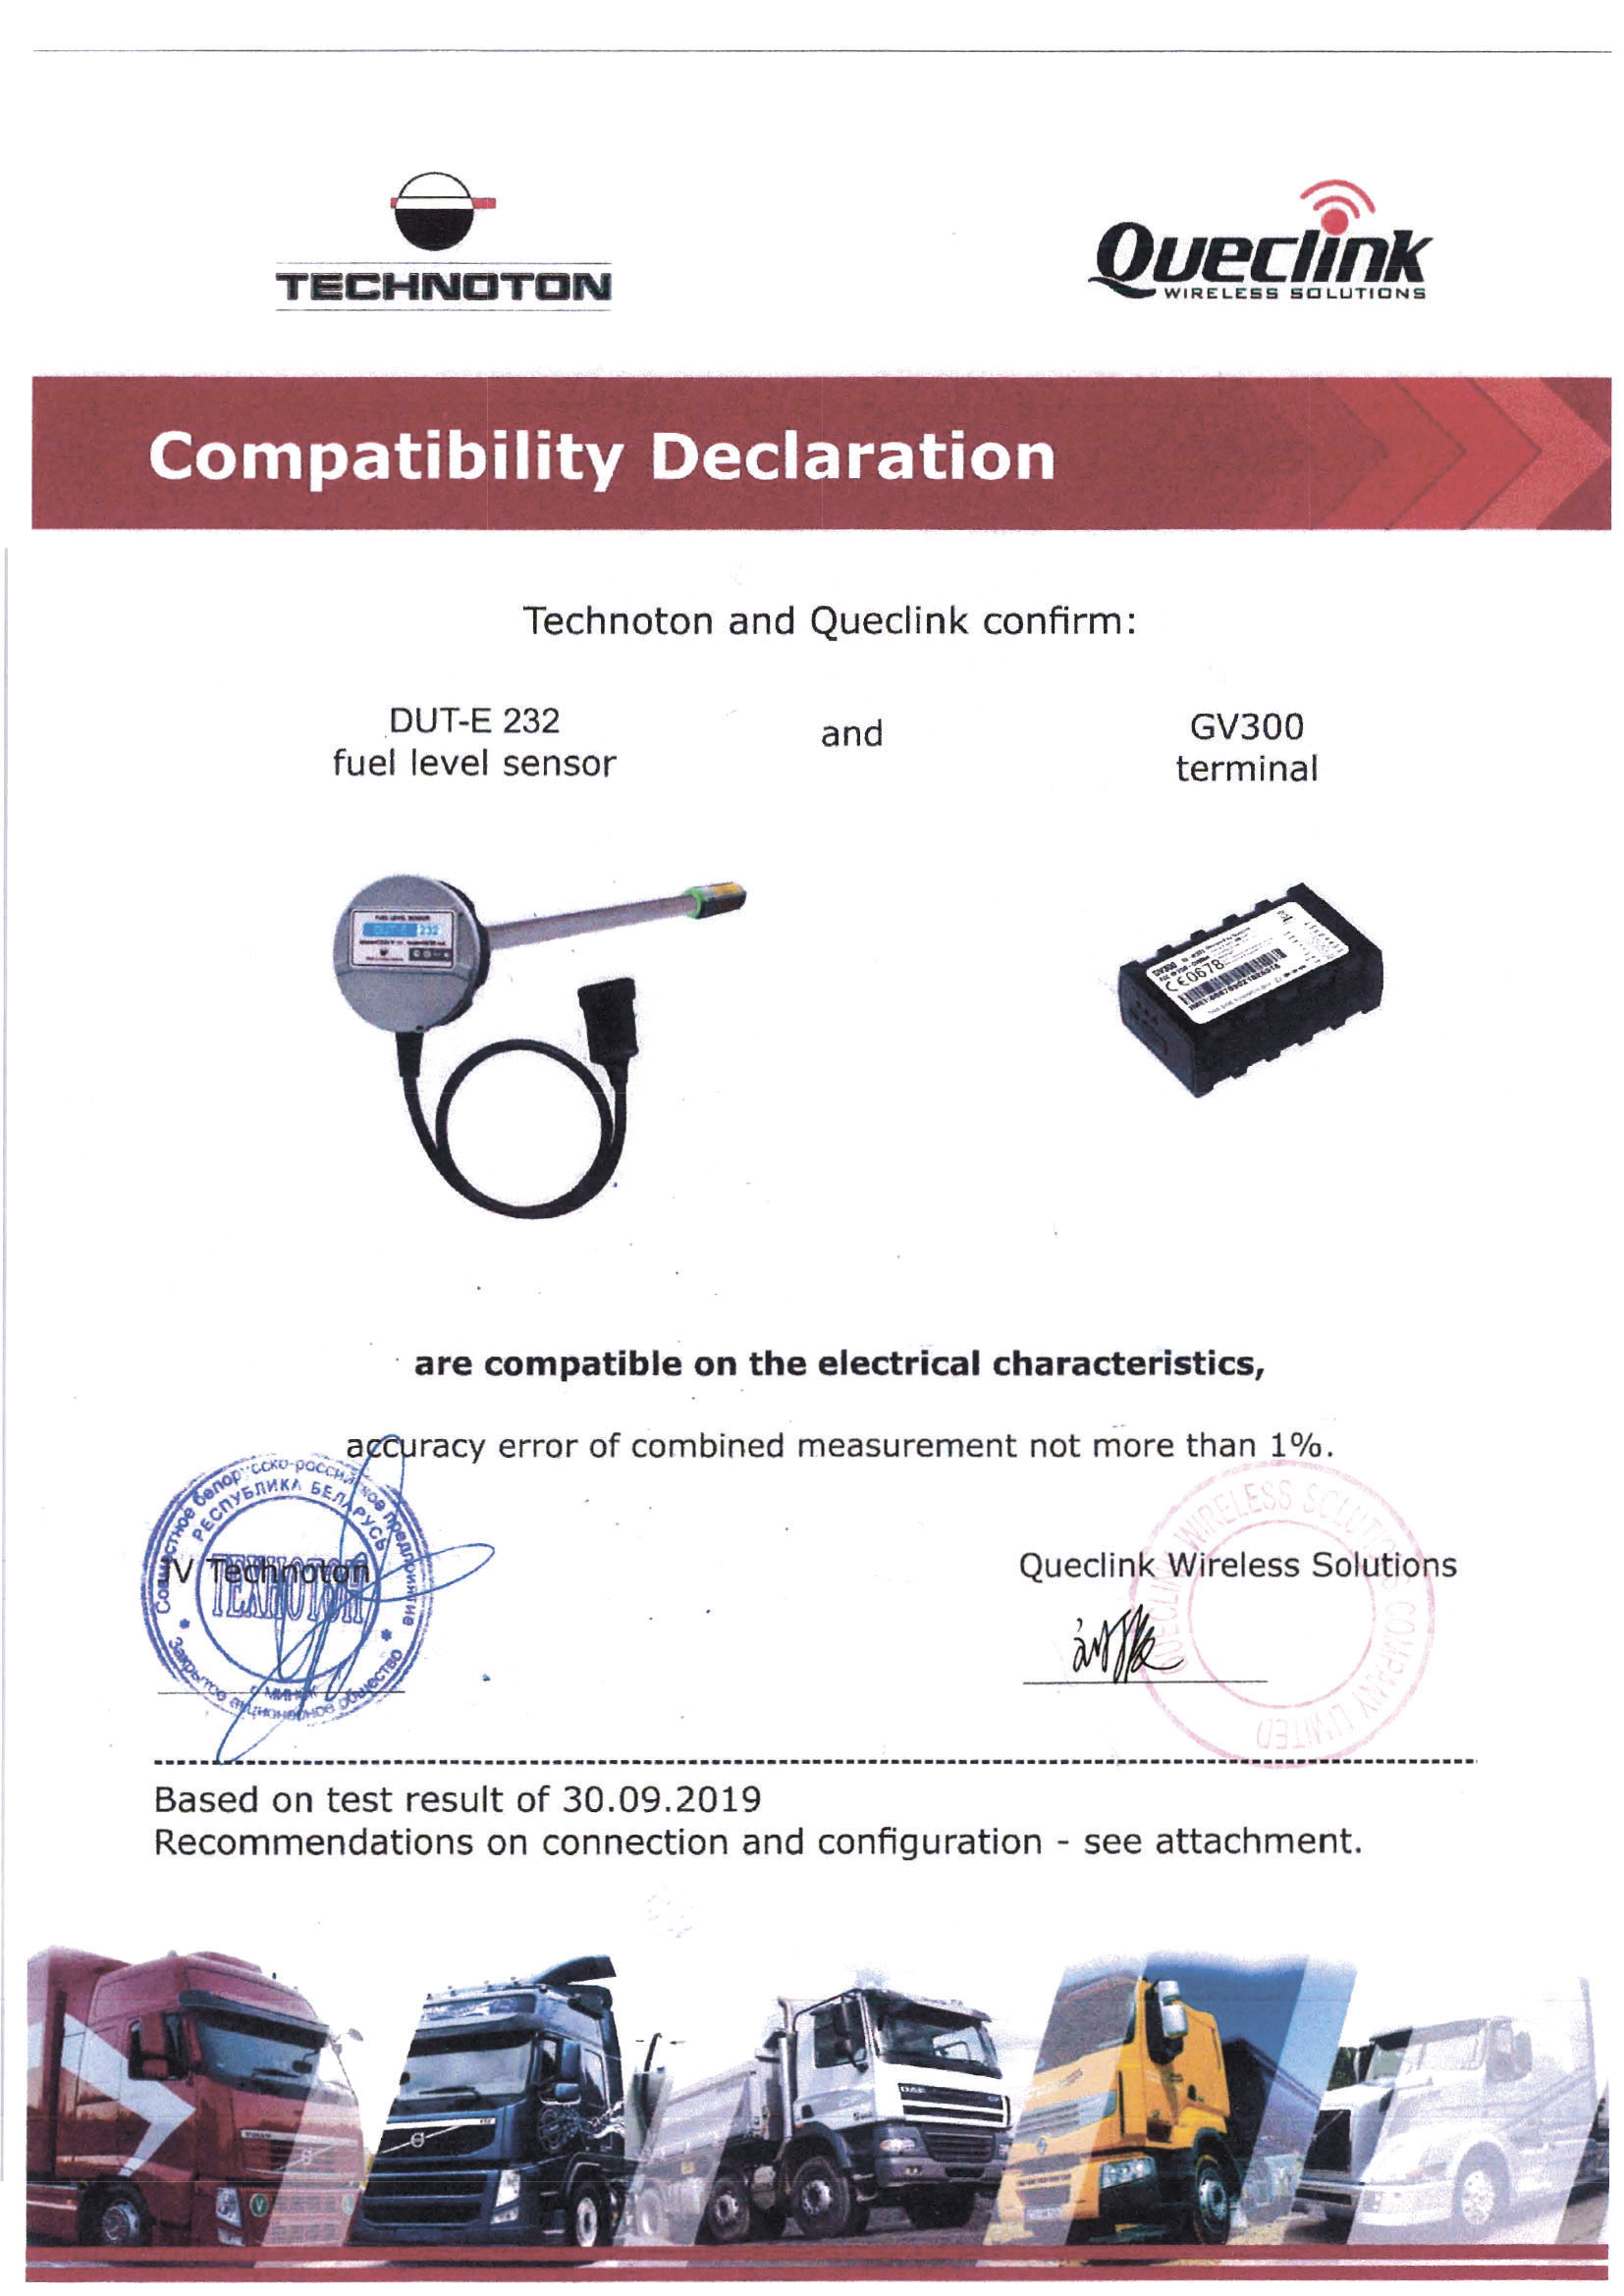 Compatibility Declaration of Technoton DUT-E 232 and Queclink GV300 tracker